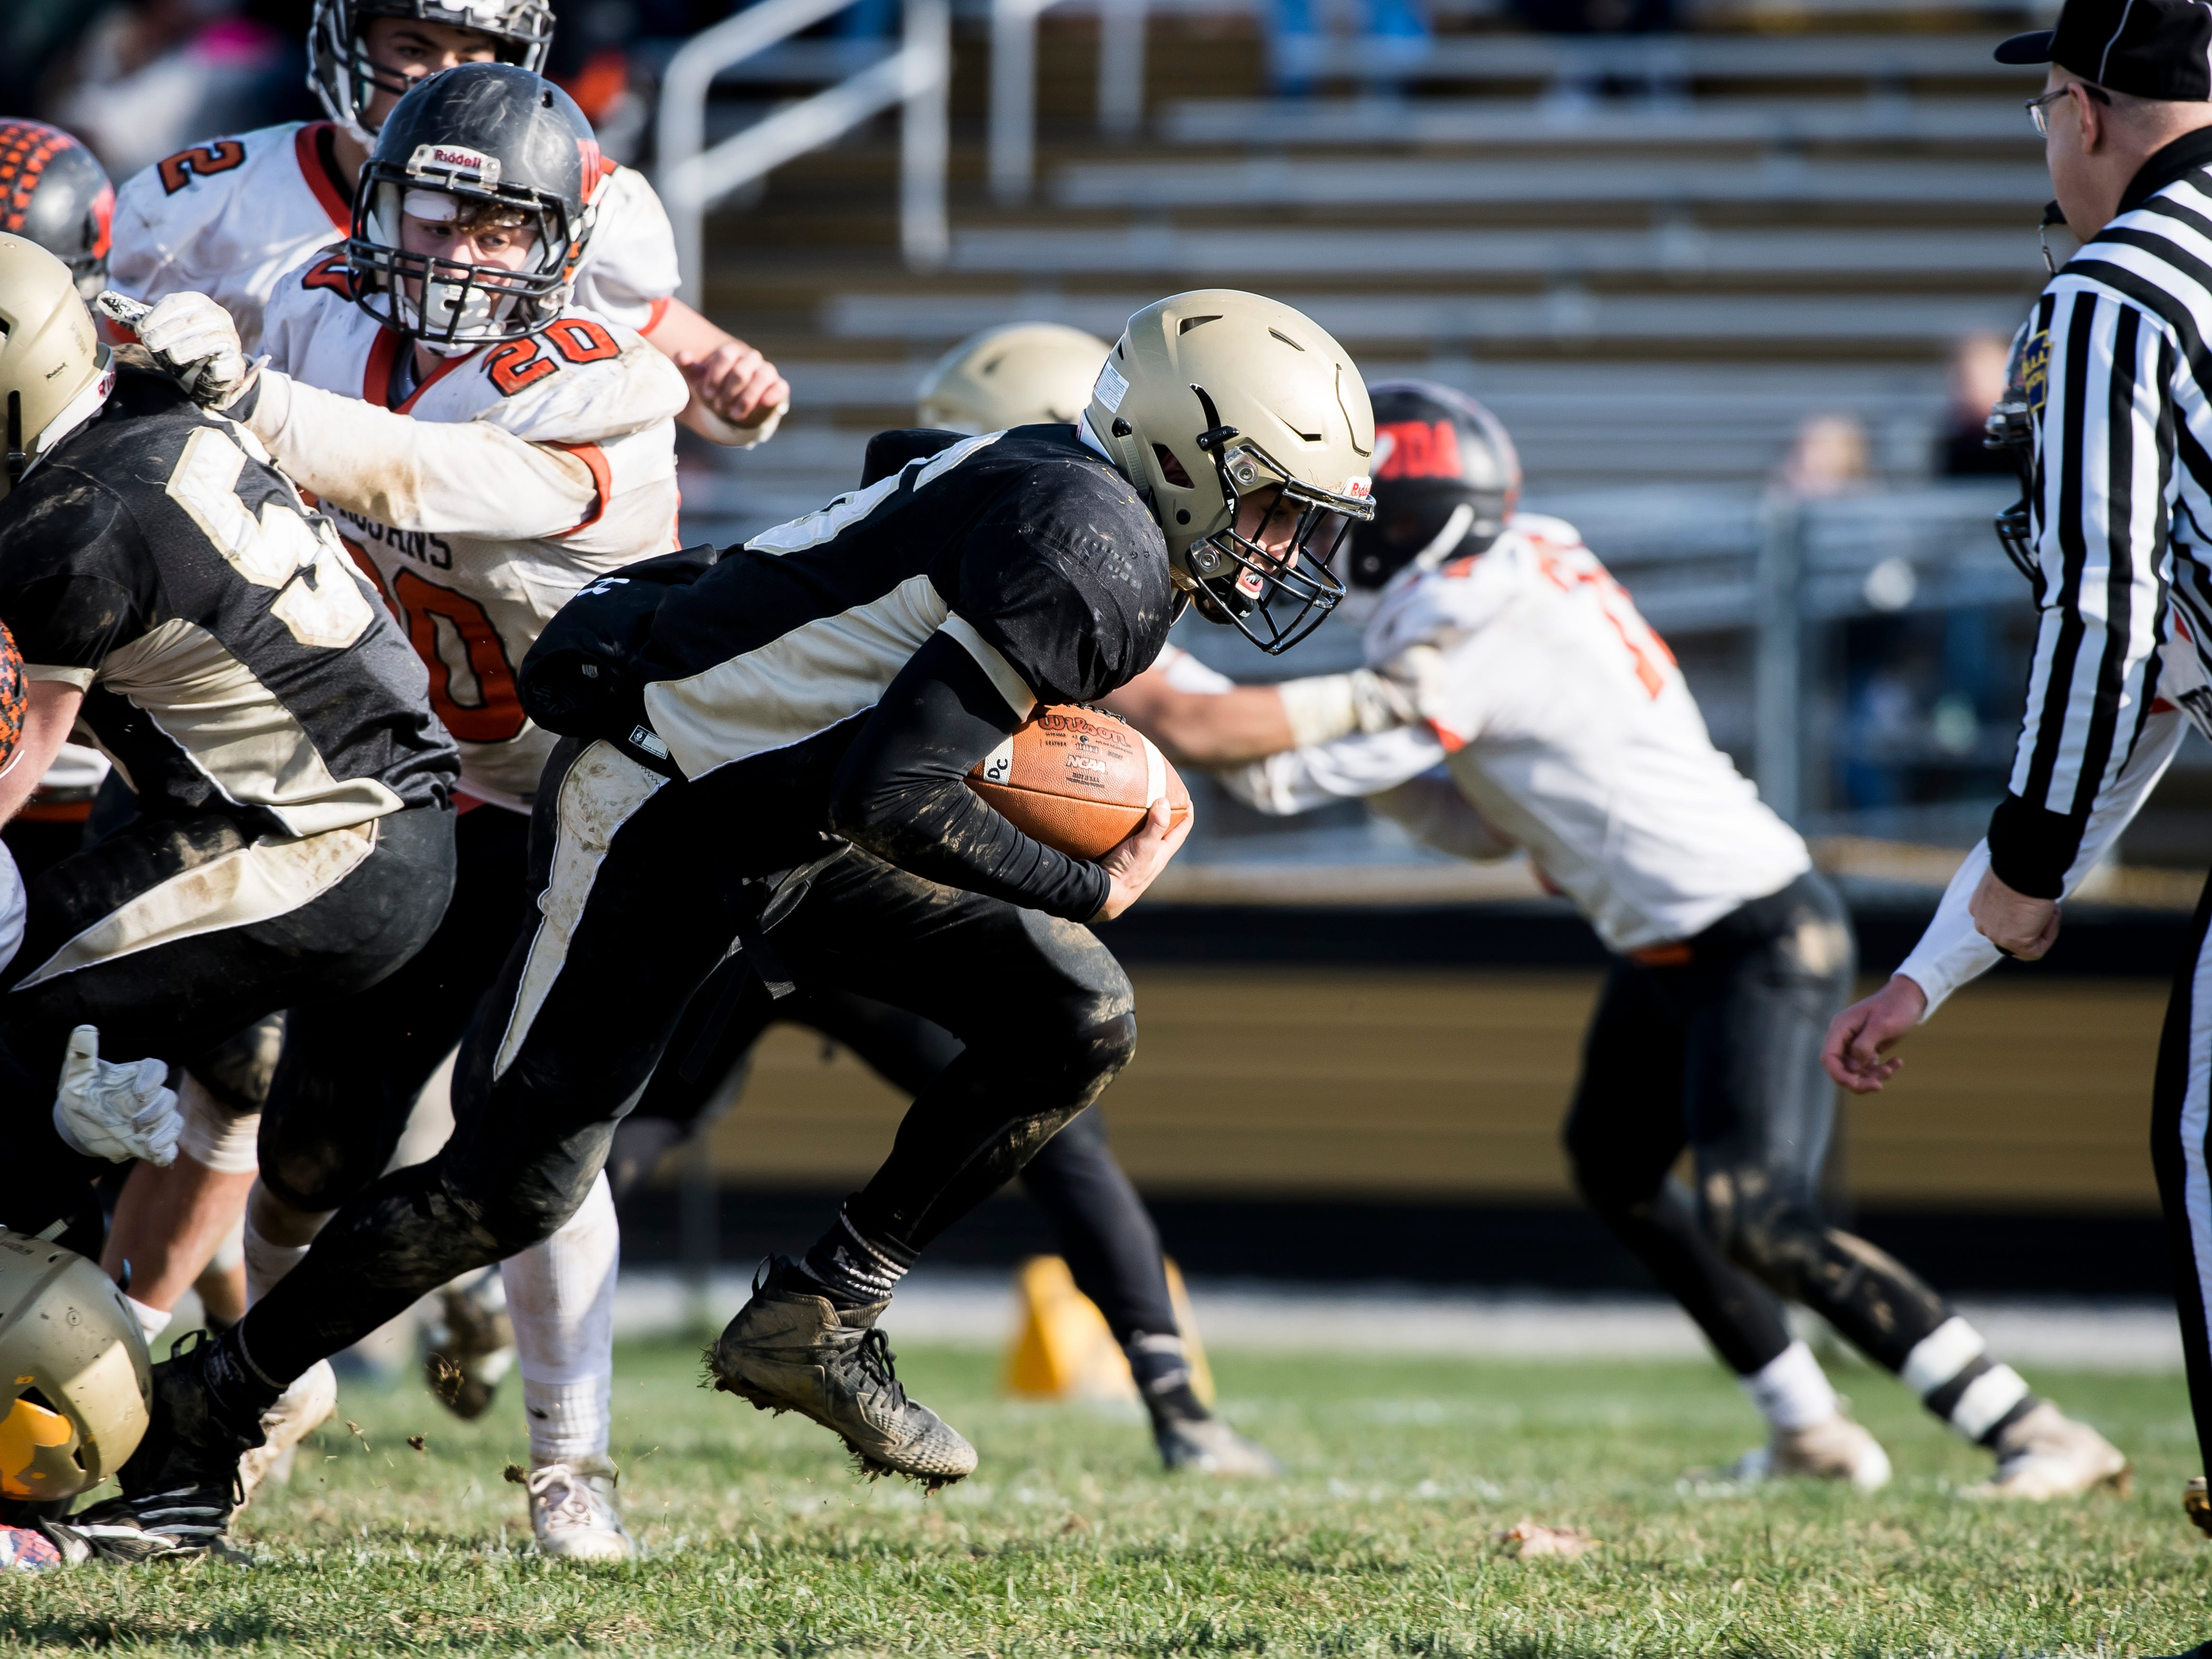 Delone Catholic's Evan Brady rushes into the end zone to score a touchdown during a District III Class 2A semifinal game against Upper Dauphin on Saturday, November 3, 2018. The Squires won 48-23.